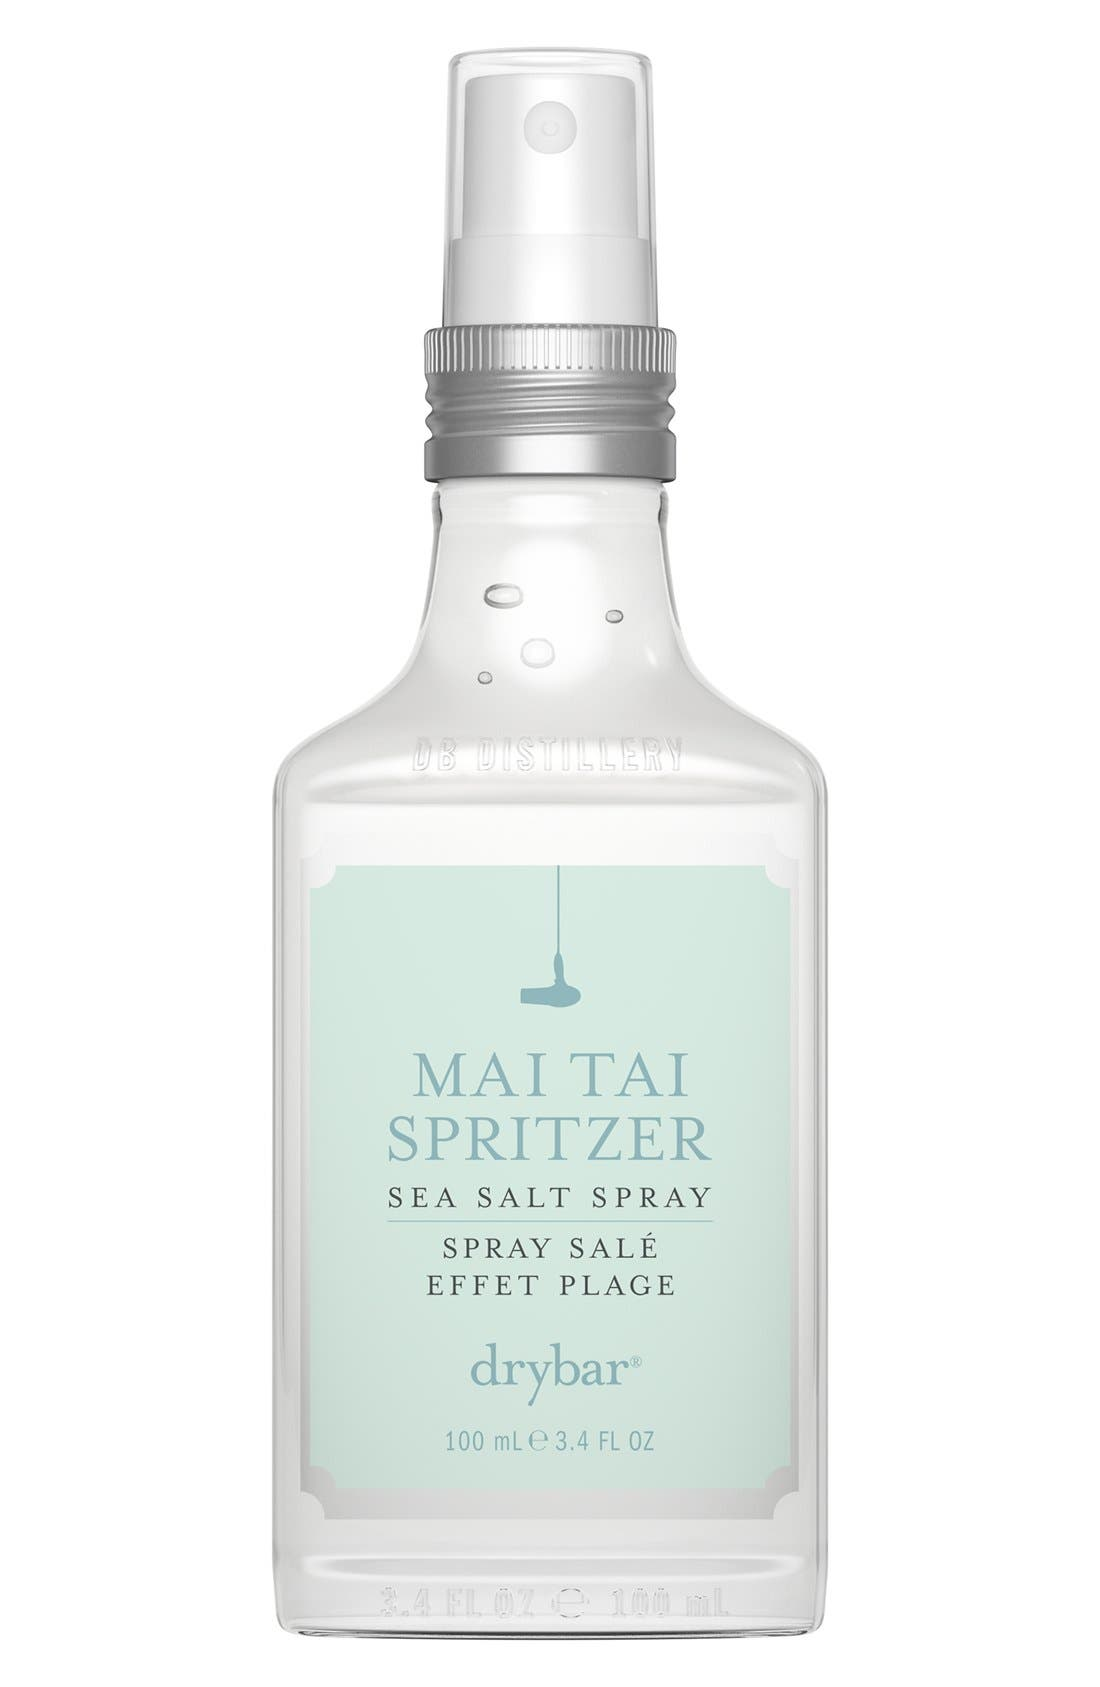 Drybar 'Mai Tai Spritzer' Sea Salt Spray